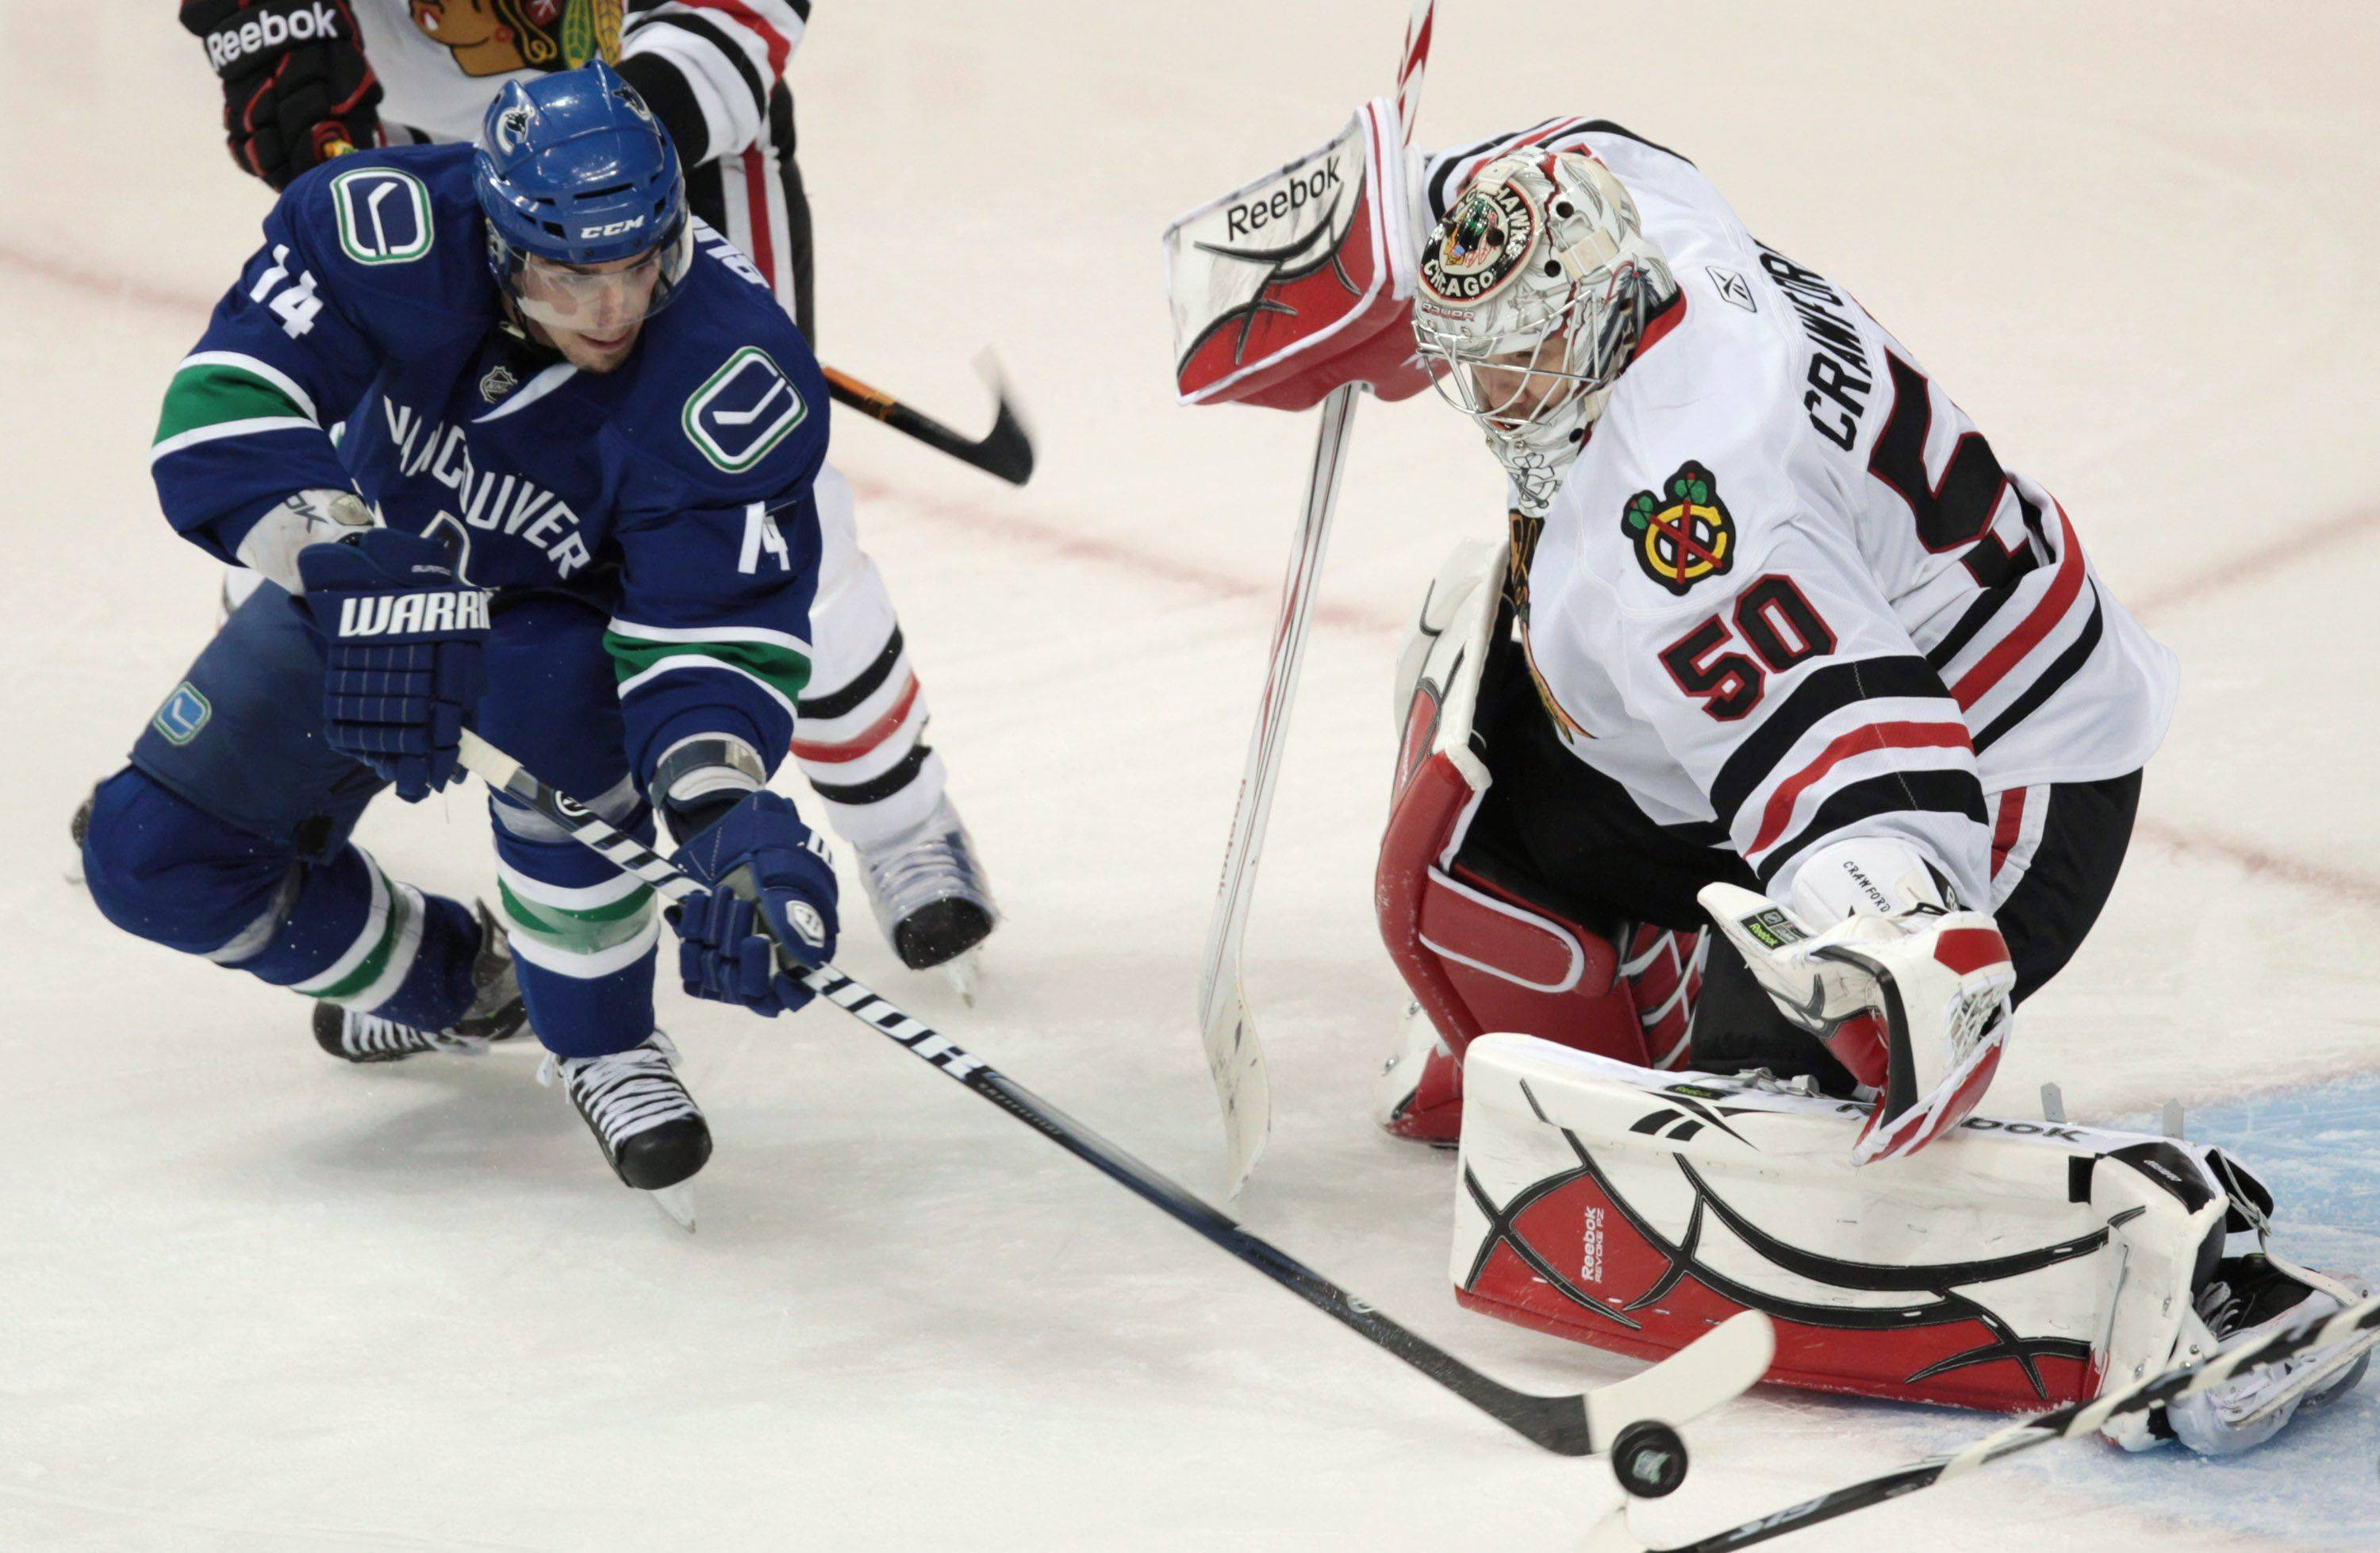 The Vancouver Canucks' Alex Burrows, left, is stopped by Corey Crawford during the second period of Game 5 on Thursday.